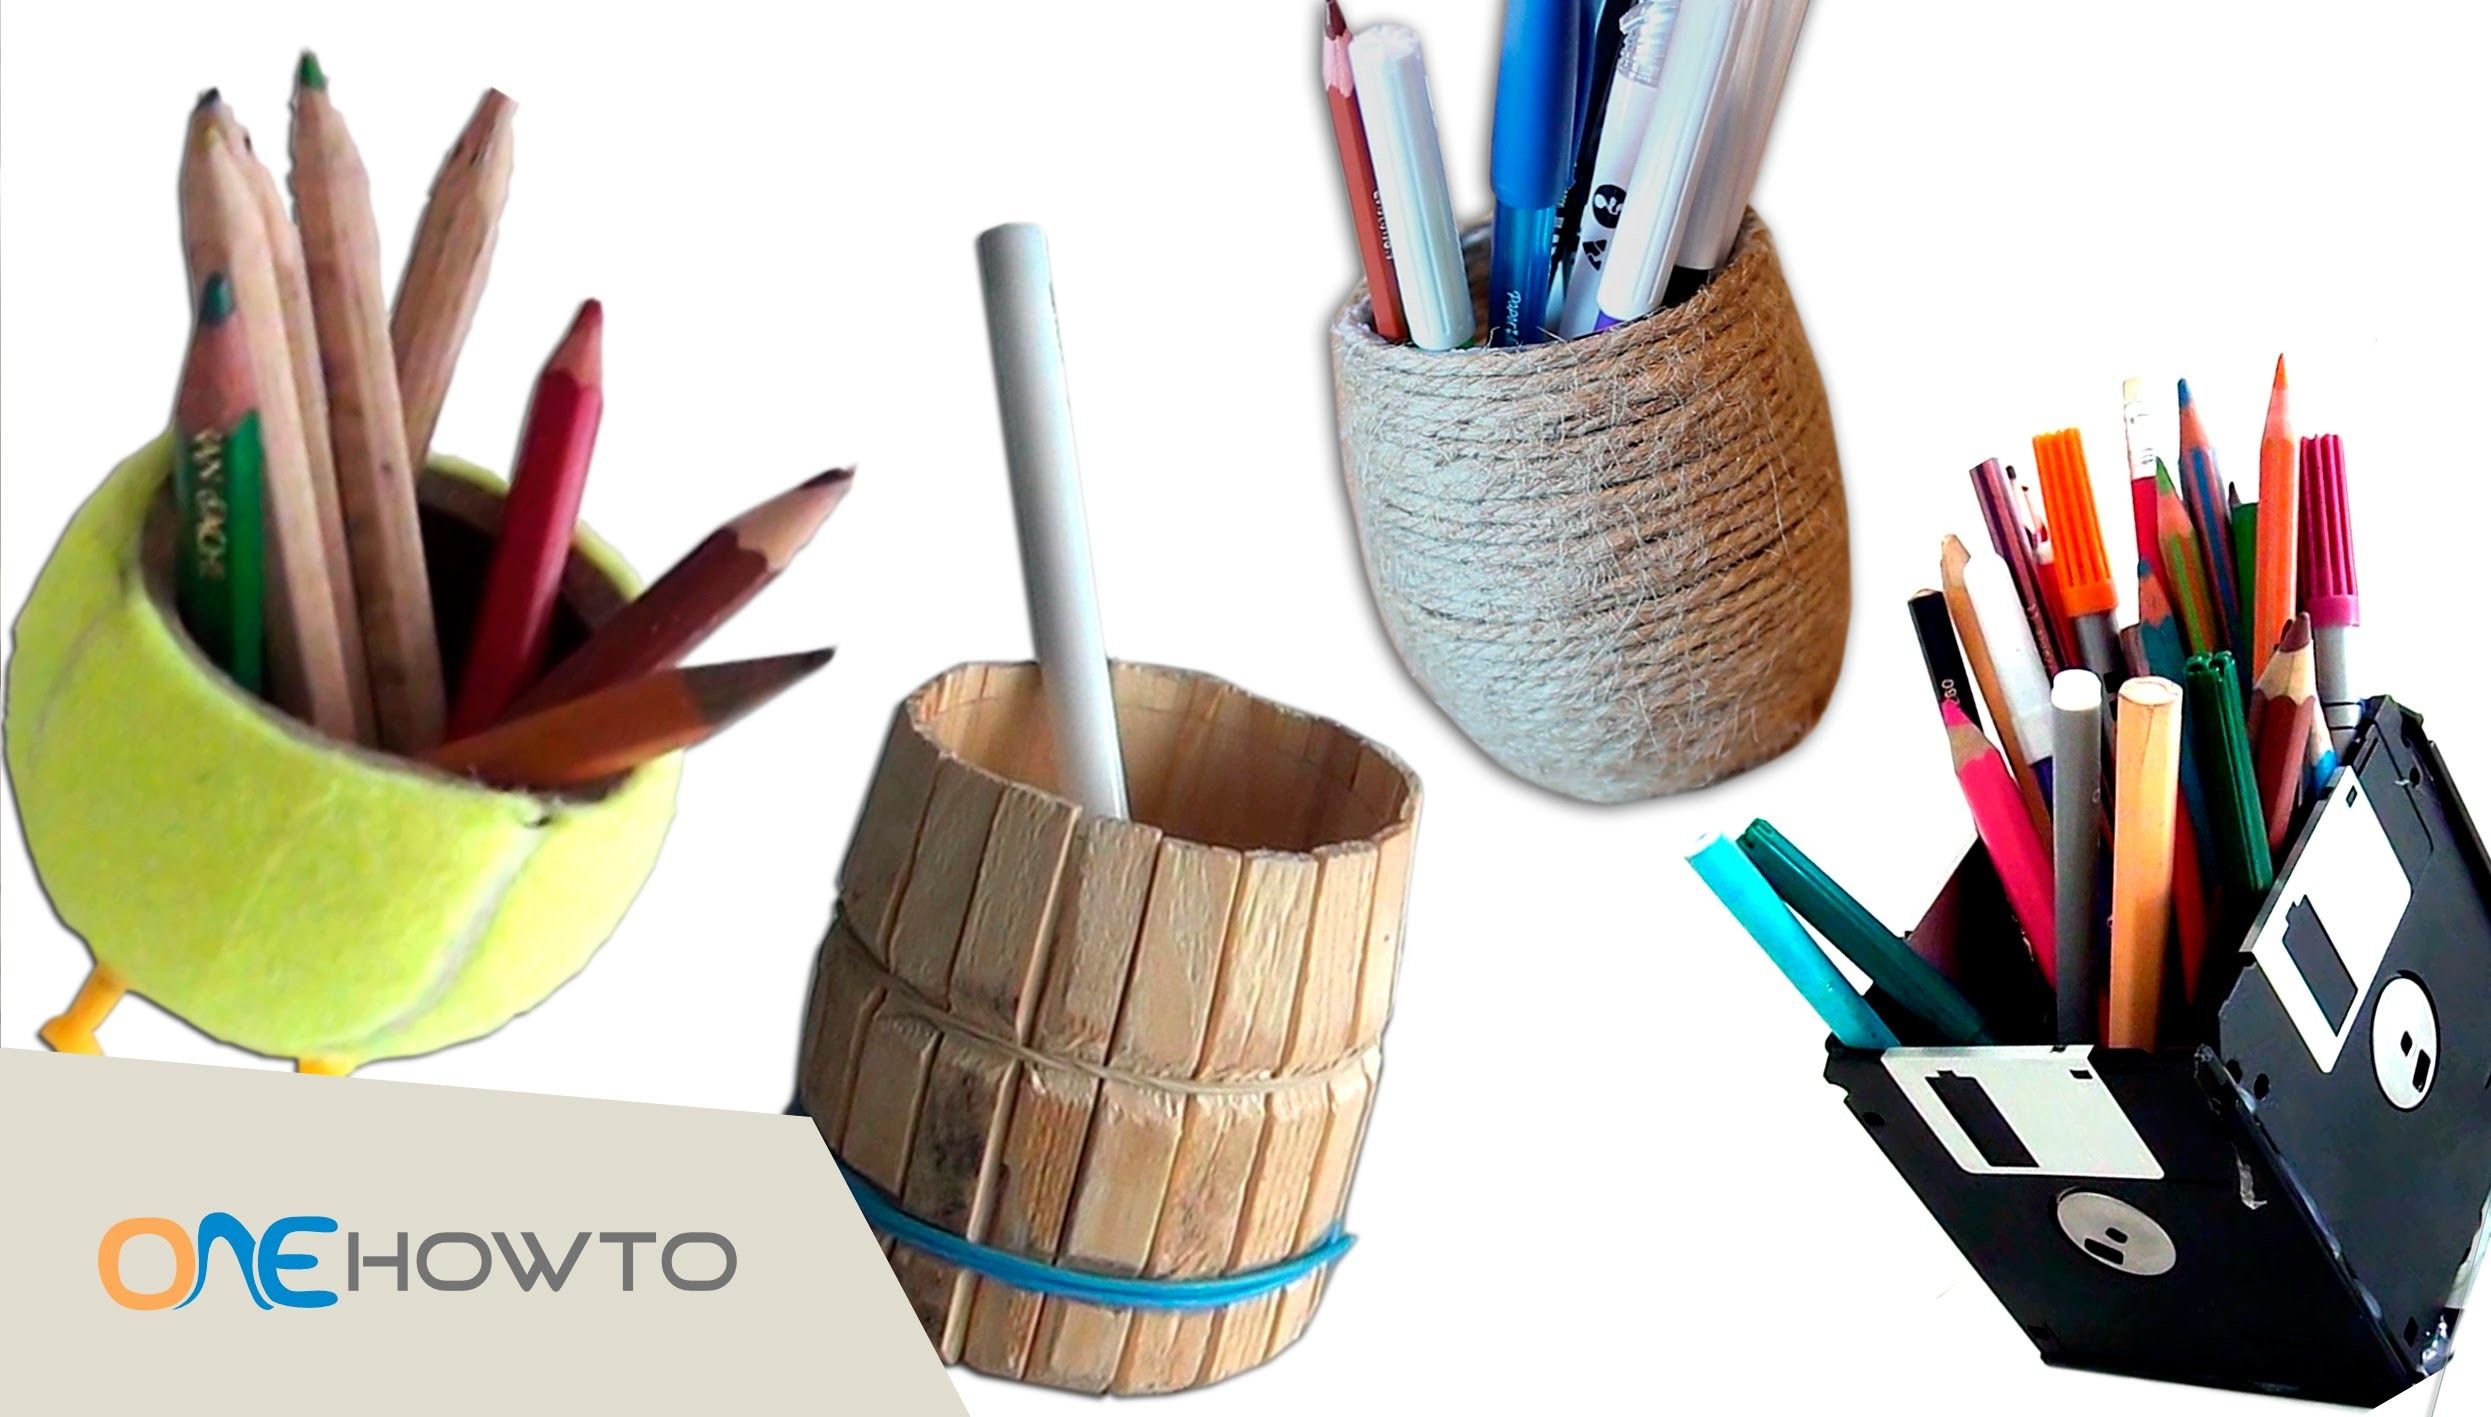 4 diy pencil holders crafts with waste material my for Uses waste material art craft